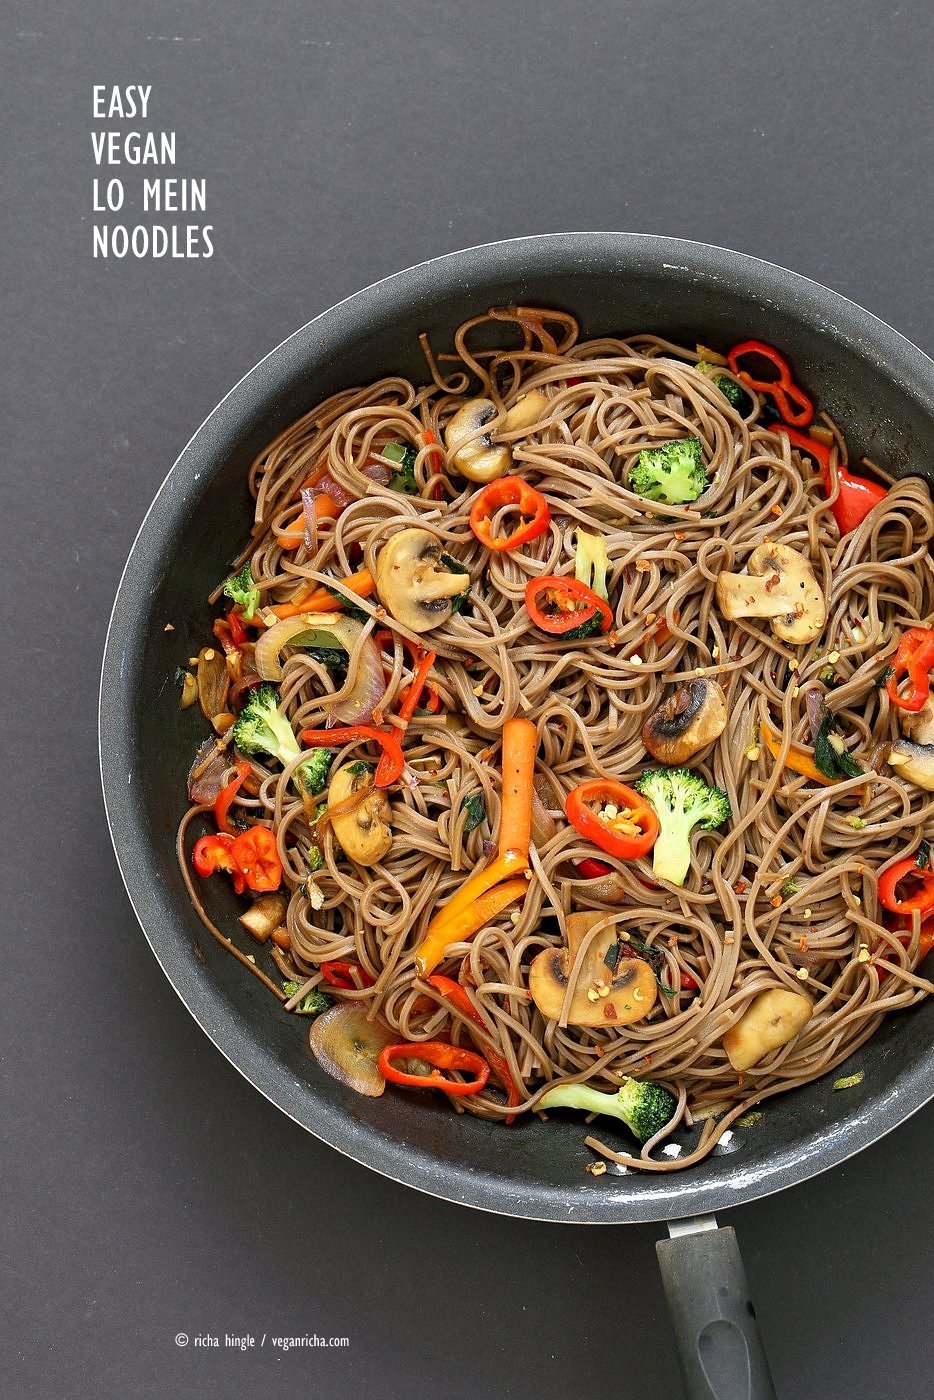 25 vegan chinese recipes vegan richa easy vegan lo mein with soba noodles ready in 20 minutes clean out the forumfinder Choice Image